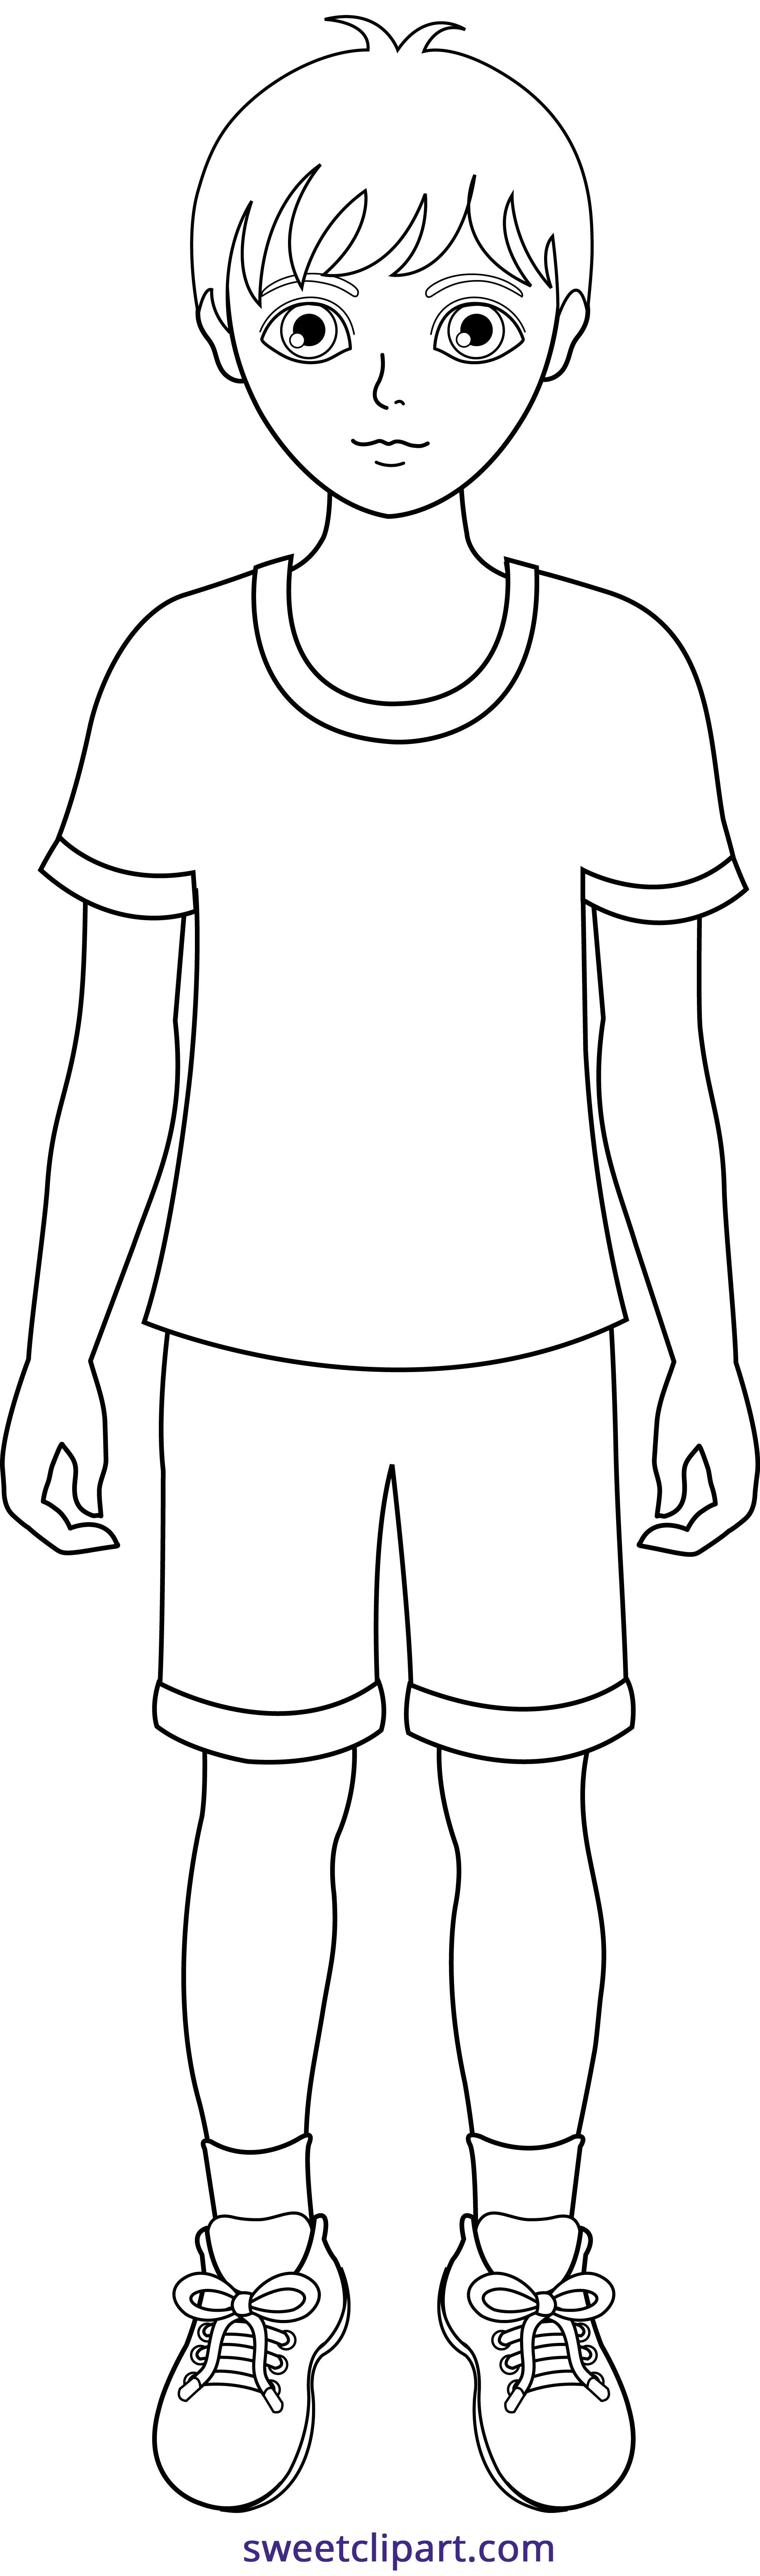 Little lineart sweet clip. Weight clipart boy